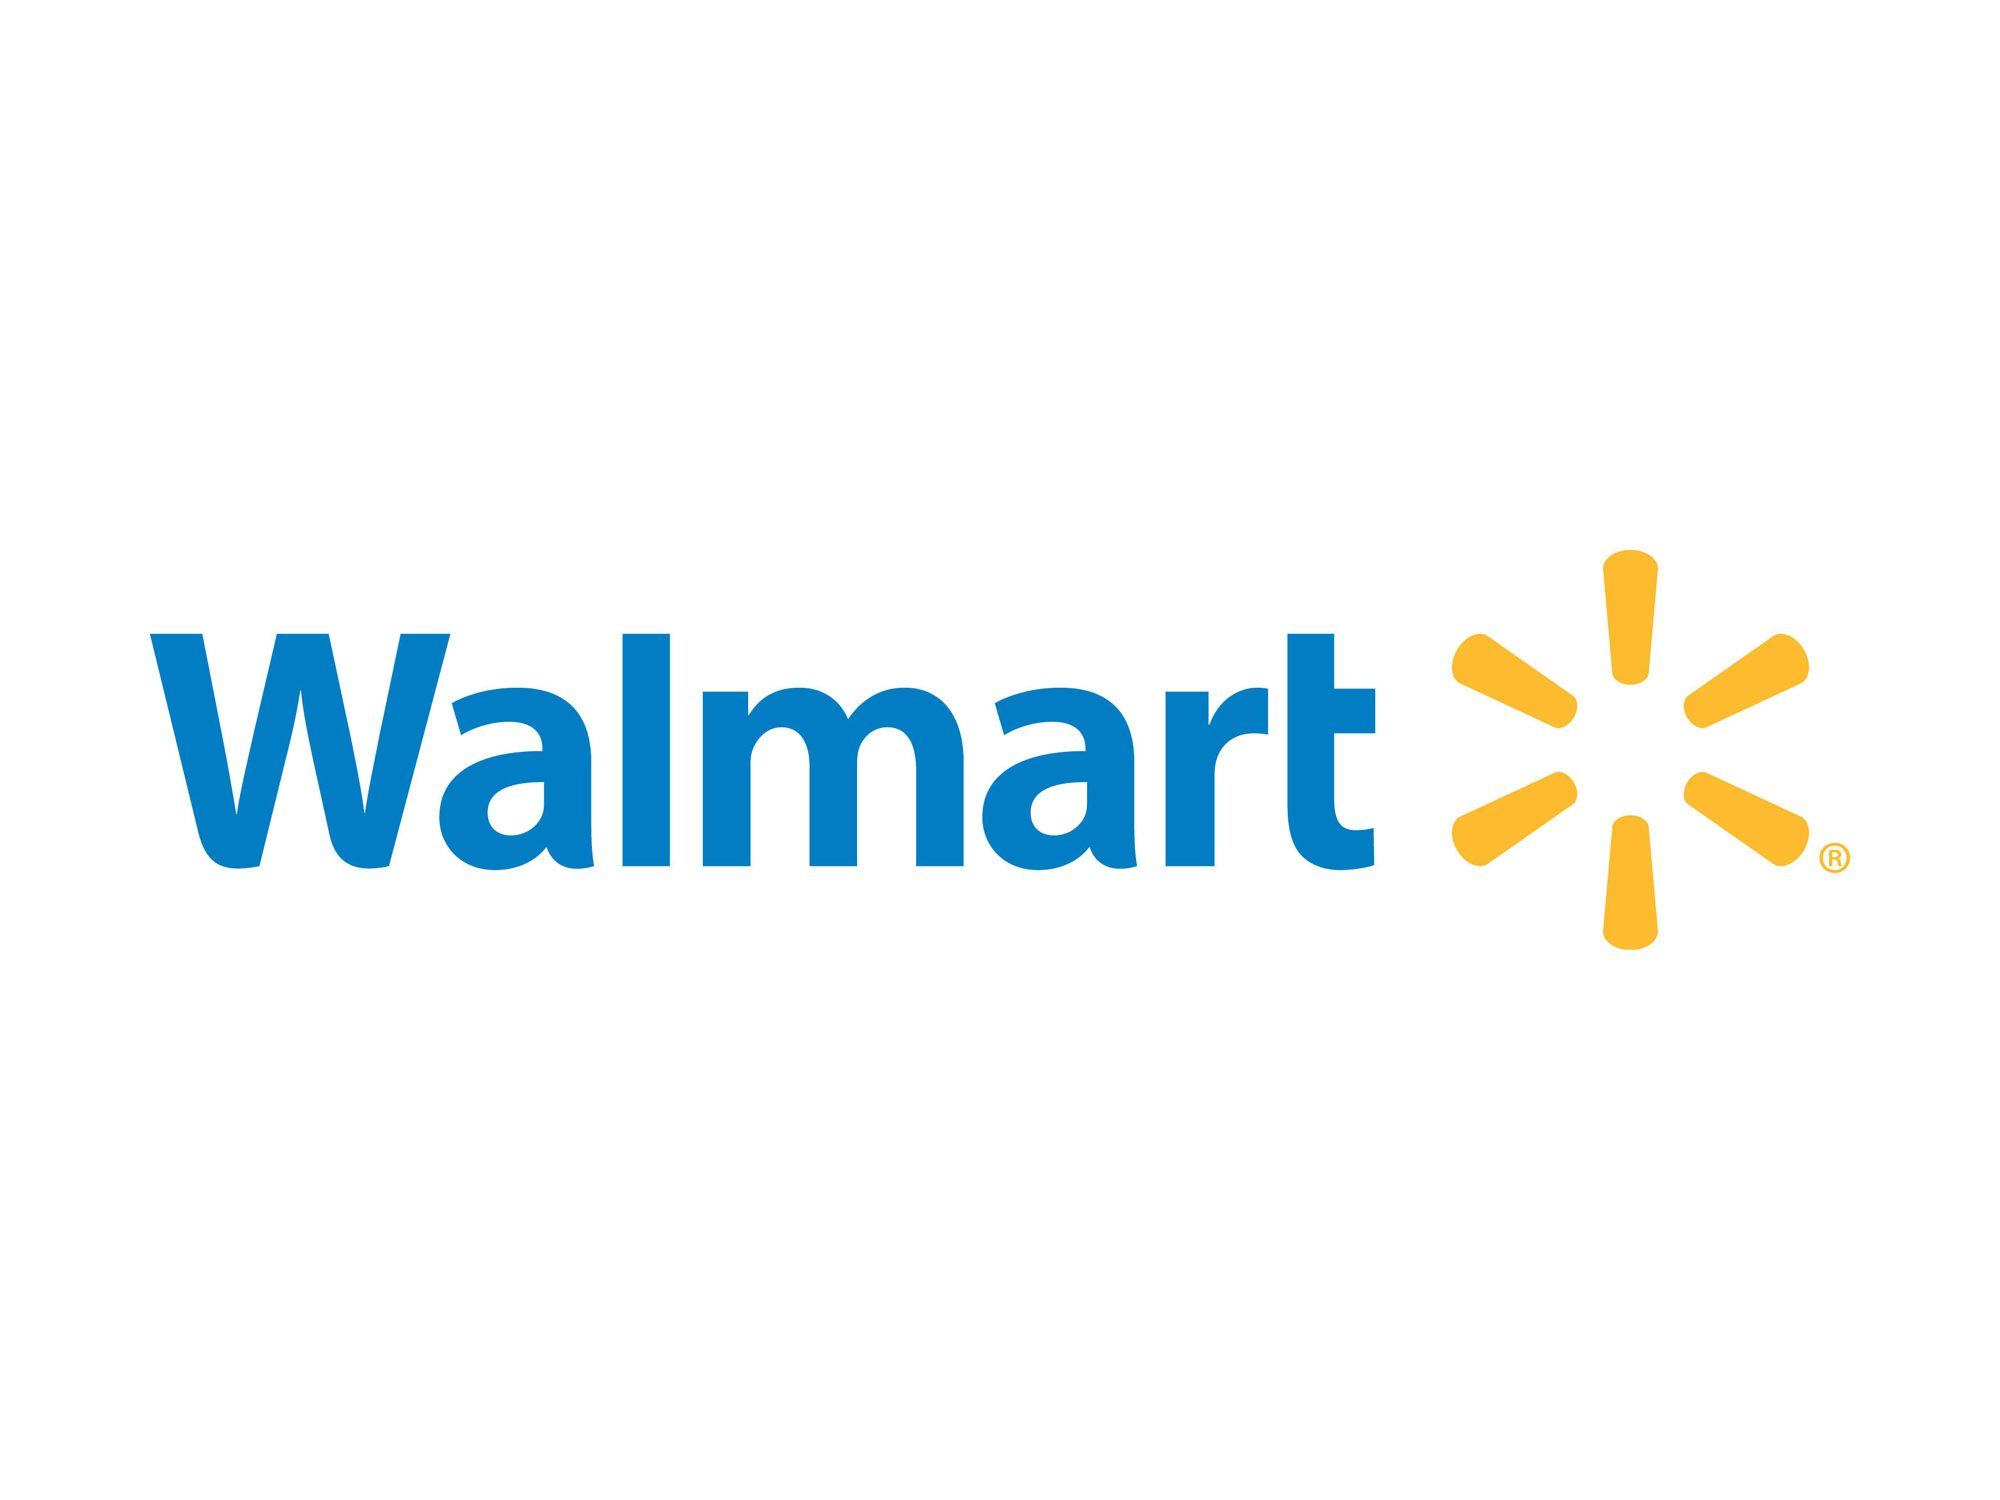 walmart 4 ps of marketing Target has tried to stay out of wal-mart's niche of low prices by the best supply  chain and pressuring vendors for low prices due to their size.